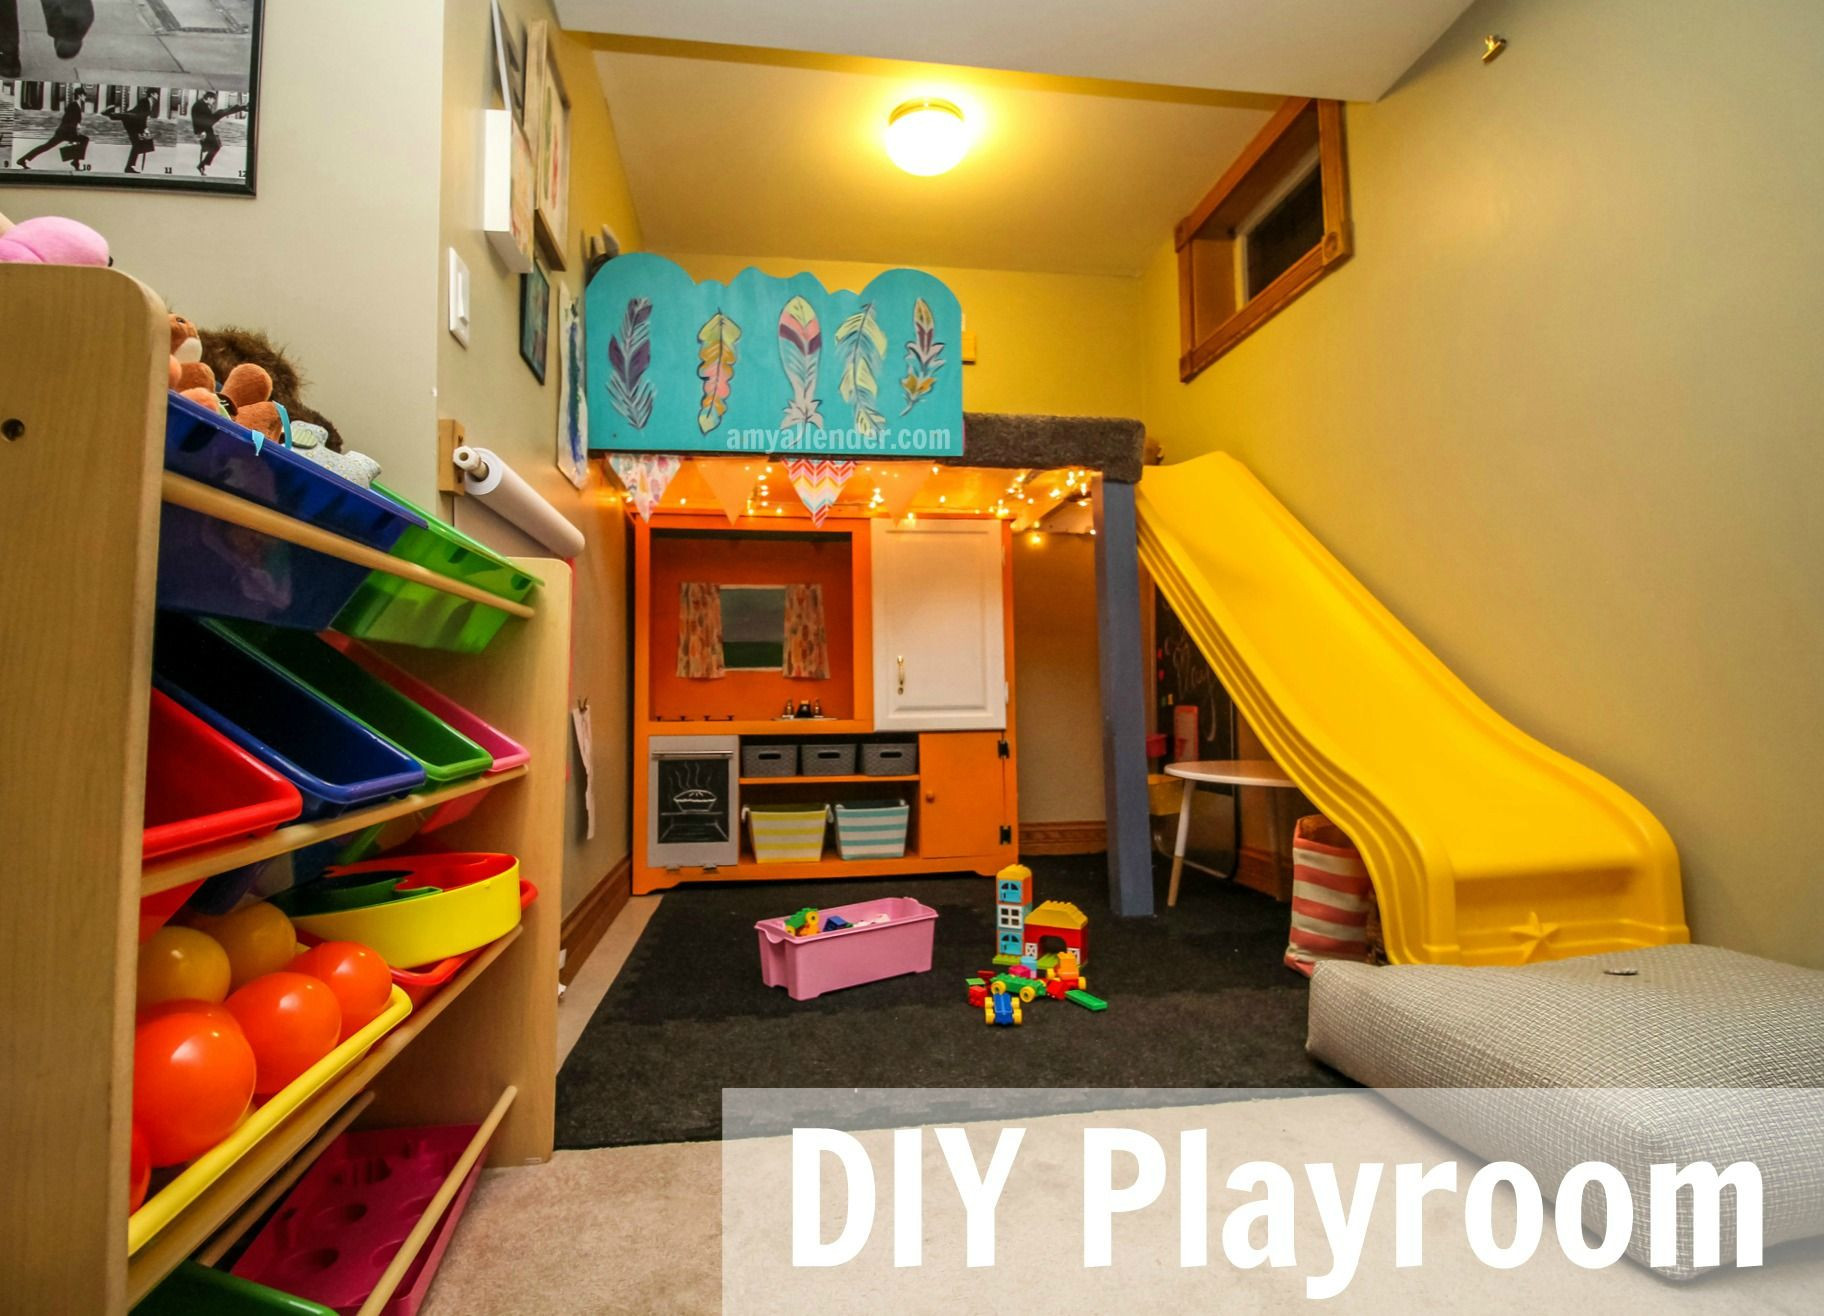 Best ideas about DIY Kids Playroom . Save or Pin Turn a small space into a fun organized playroom with Now.